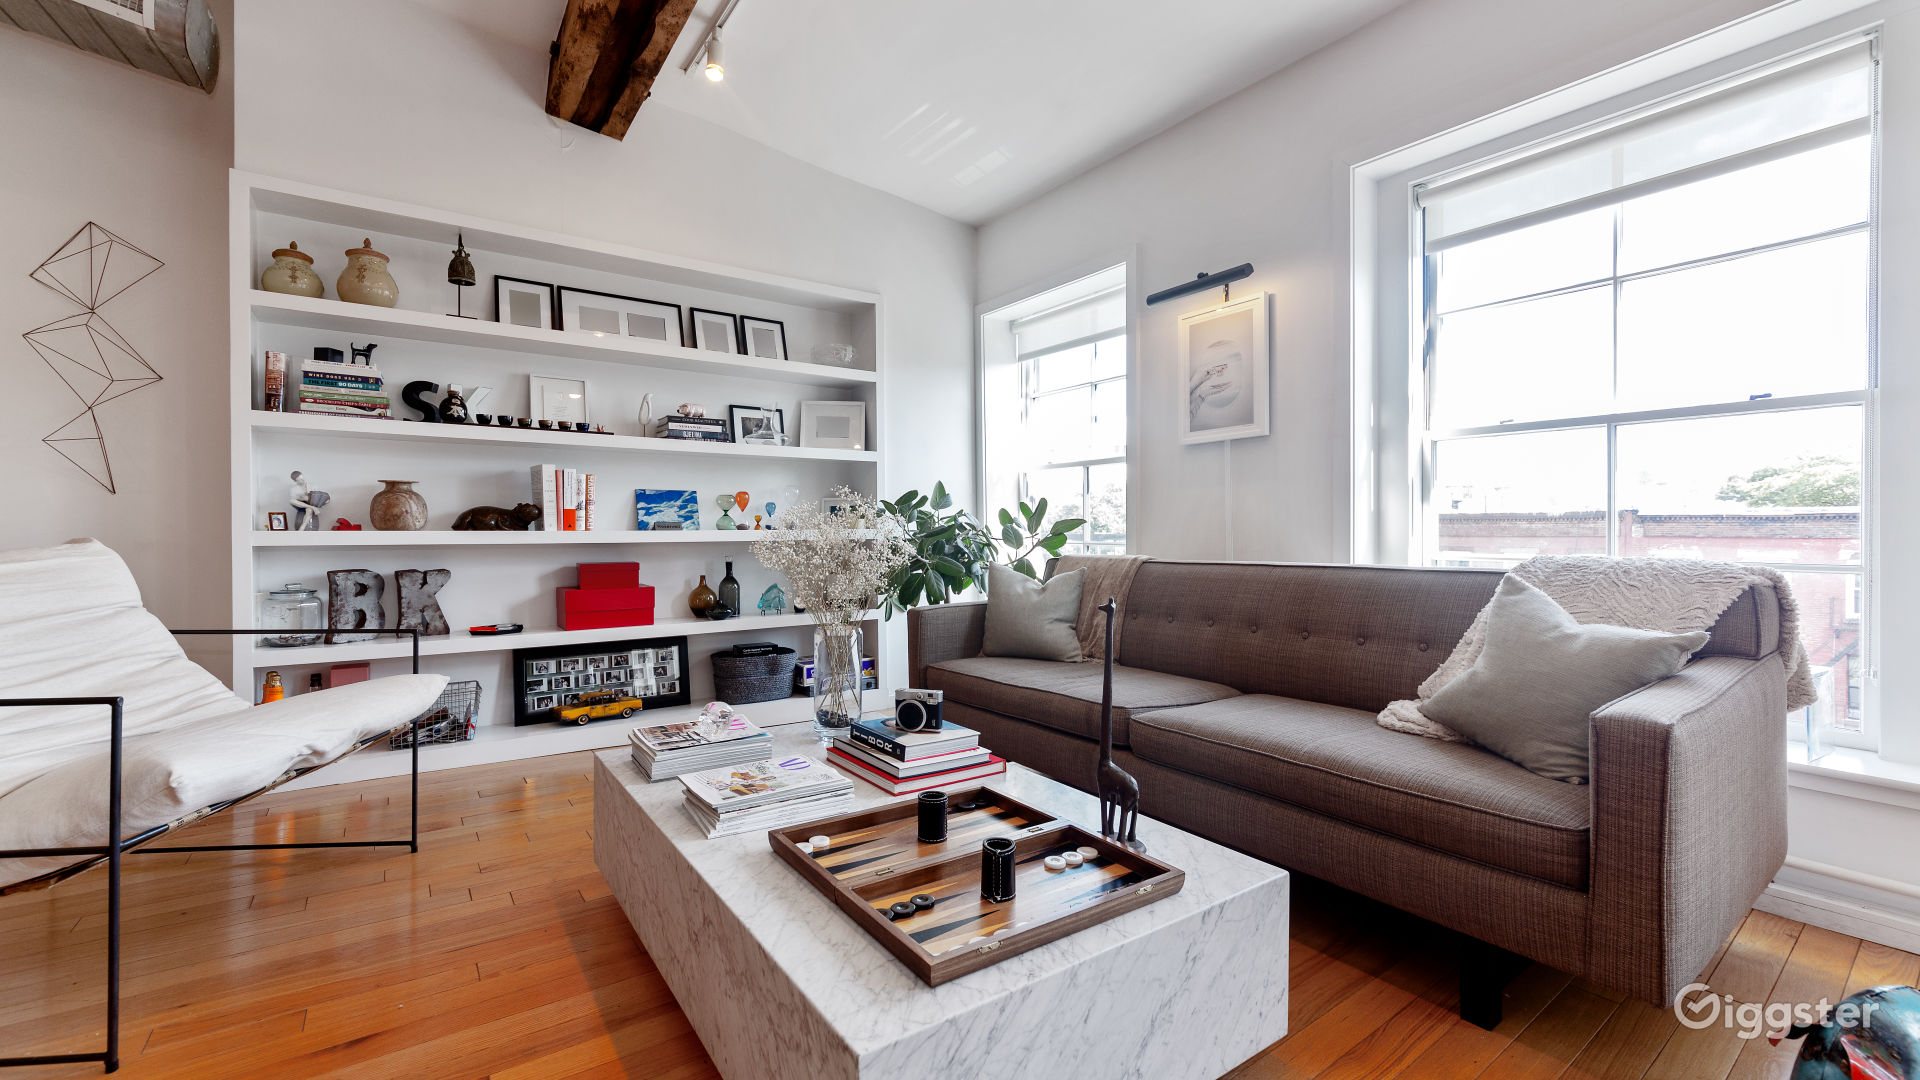 Massive loft space with exposed beams and exposed | Rent this ...